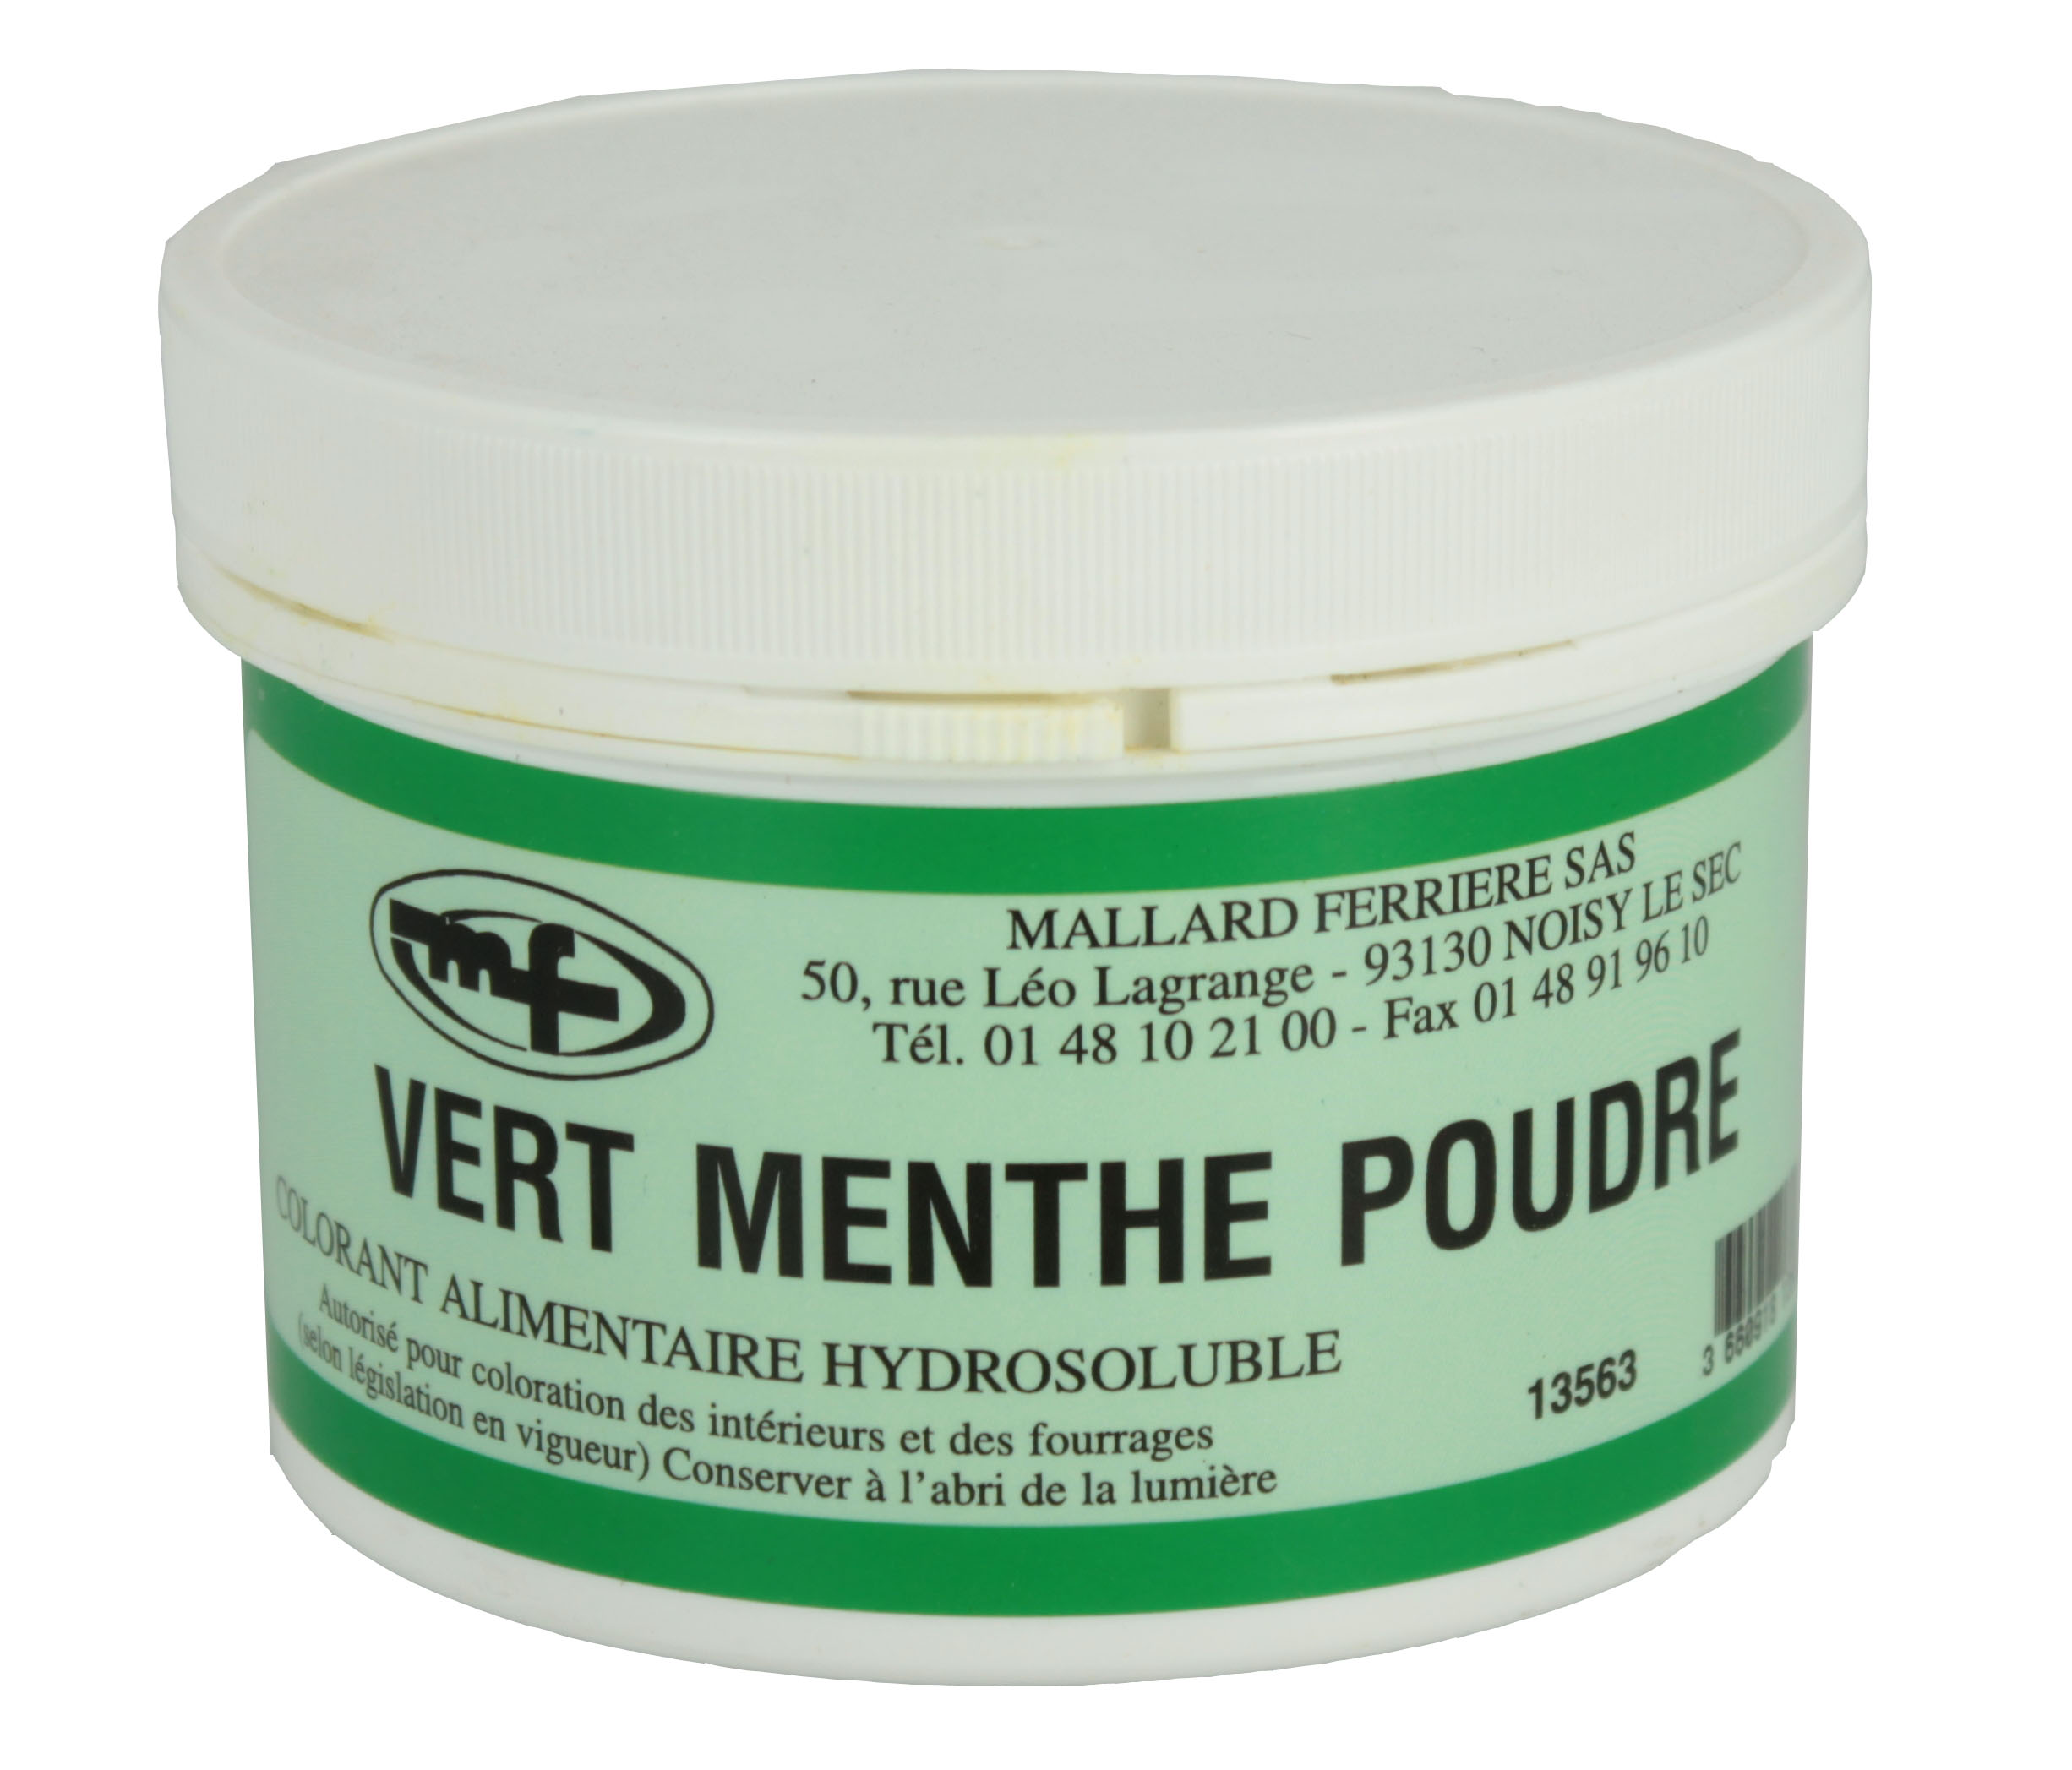 the menthe poudre